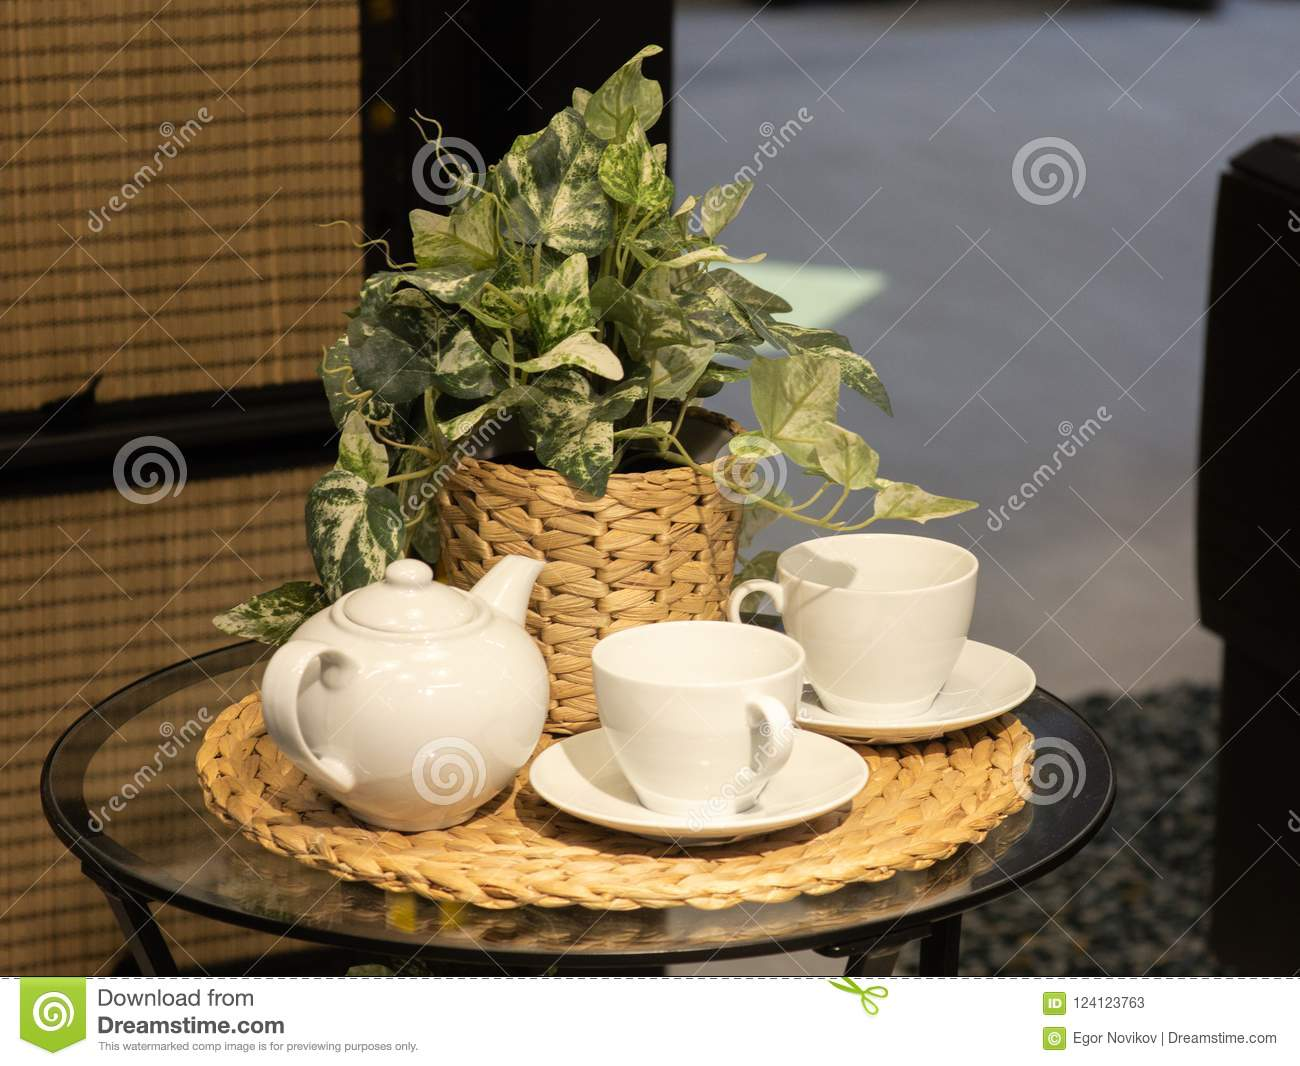 A beautiful white set of two bowls and a teapot, in the background a flower